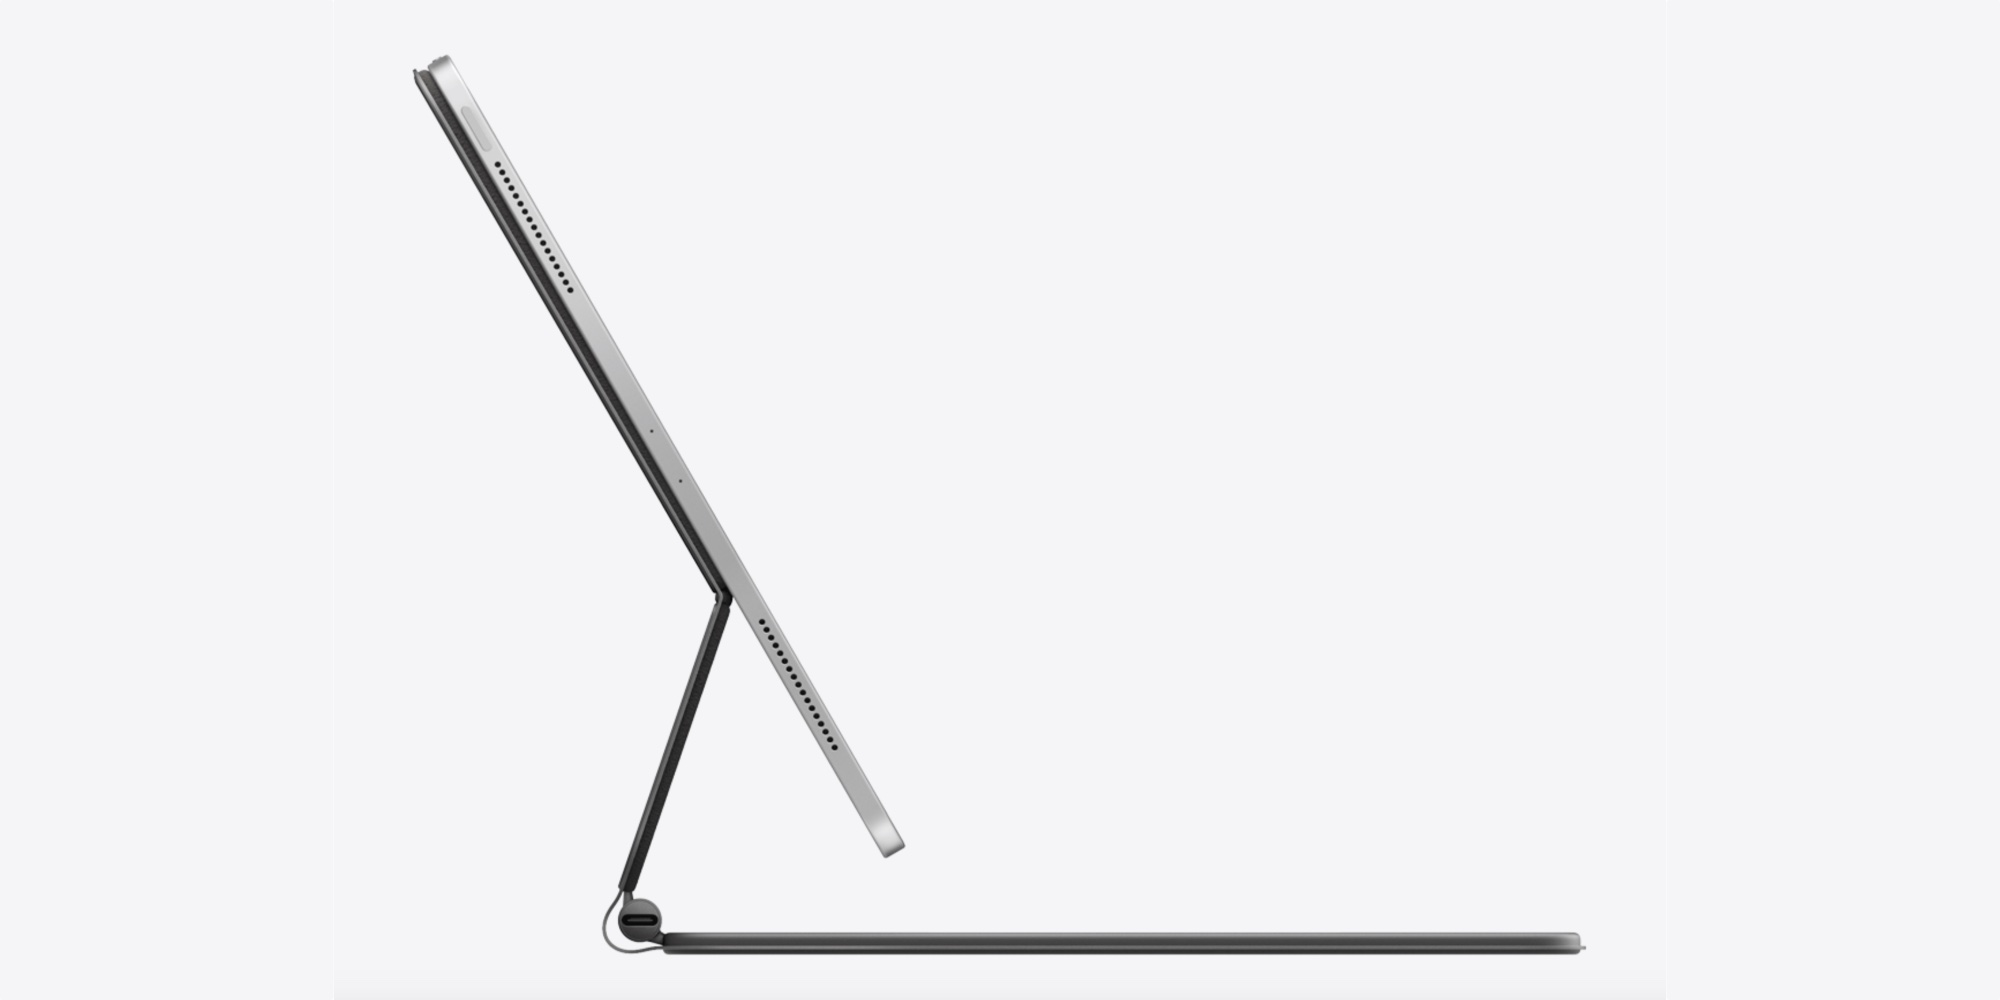 Apple's new Magic Keyboard will bring new life to my 2018